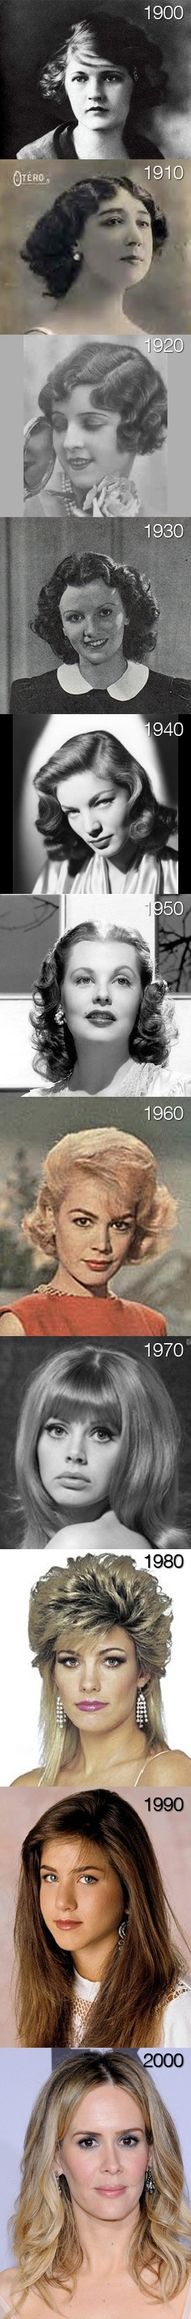 evolution of women's hairstyles. See the parts down the middle and side switching back and forth nearly every decade.